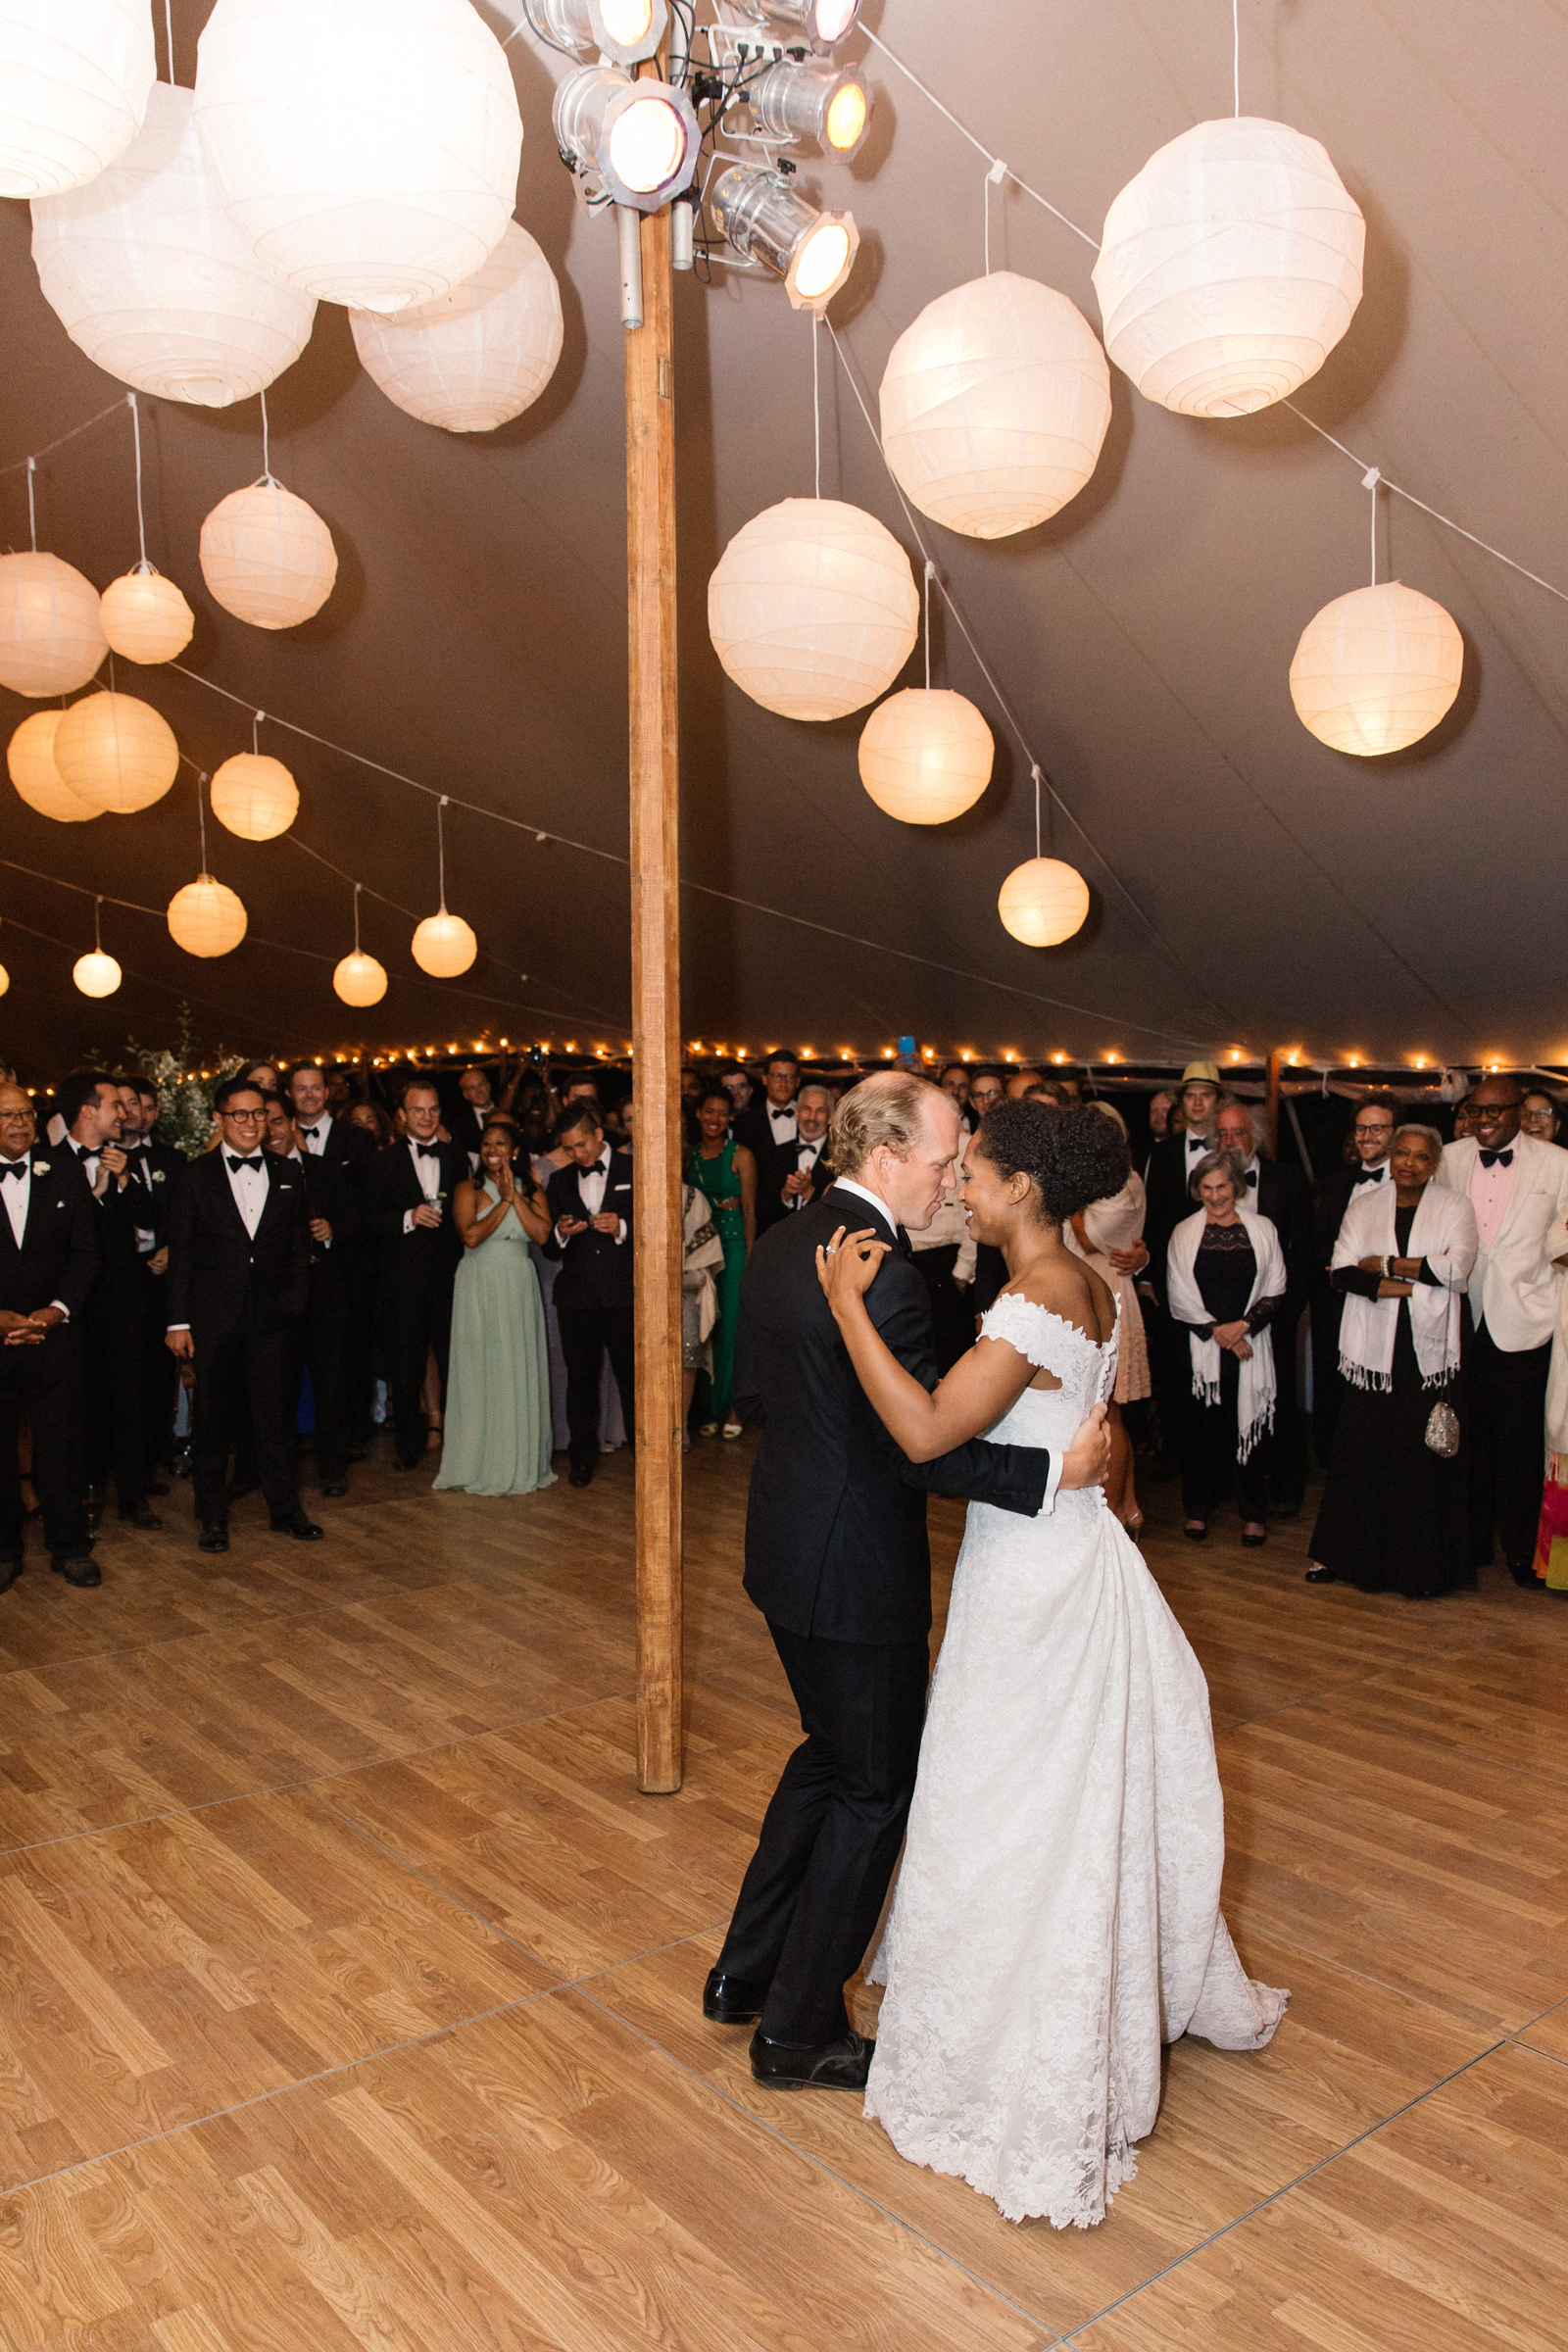 bride and groom share first dance surrounded by guests under hanging lanterns